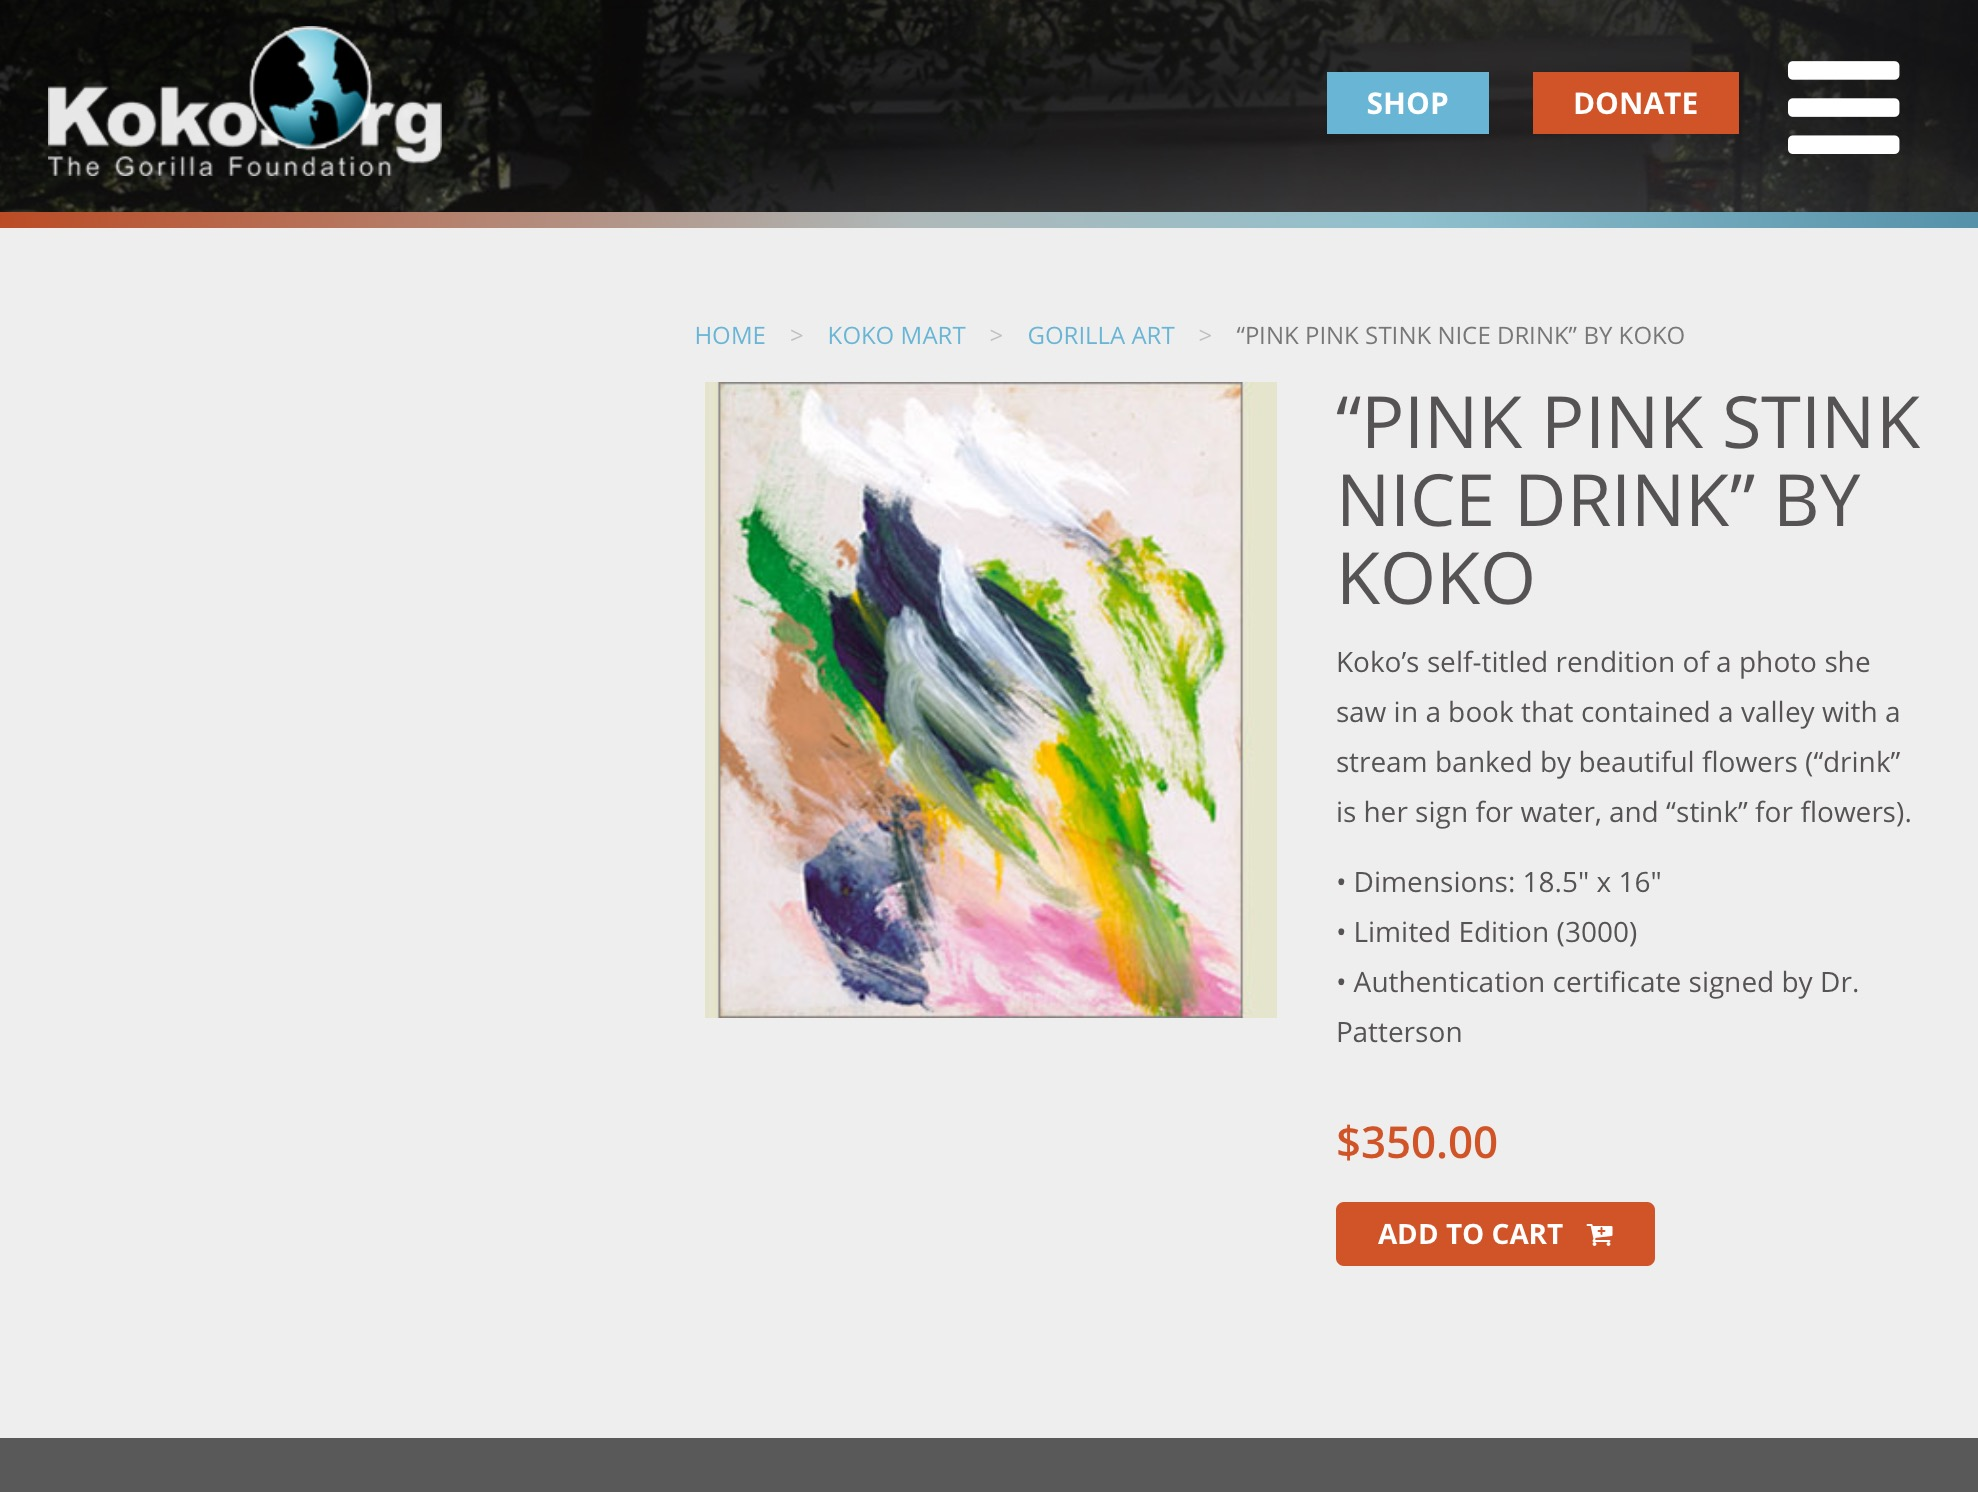 Quelle: The Gorilla Foundation, Woodside, CA. 94062  https://www.koko.org/shop/gorilla-art/pink-pink-stink-nice-drink-by-koko/